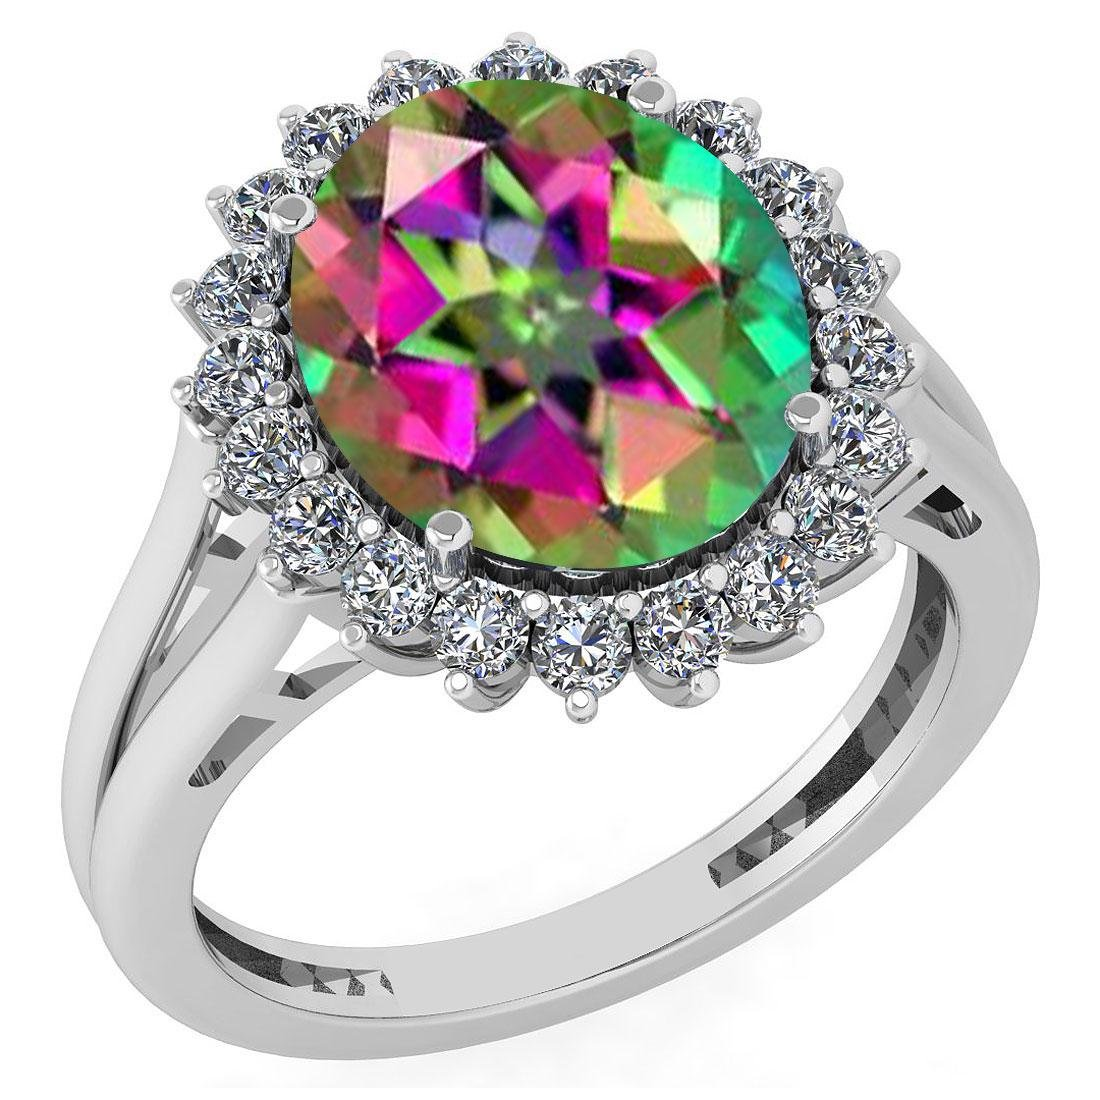 Certified 5.65 Ctw Mystic Topaz And Diamond VS/SI1 Halo